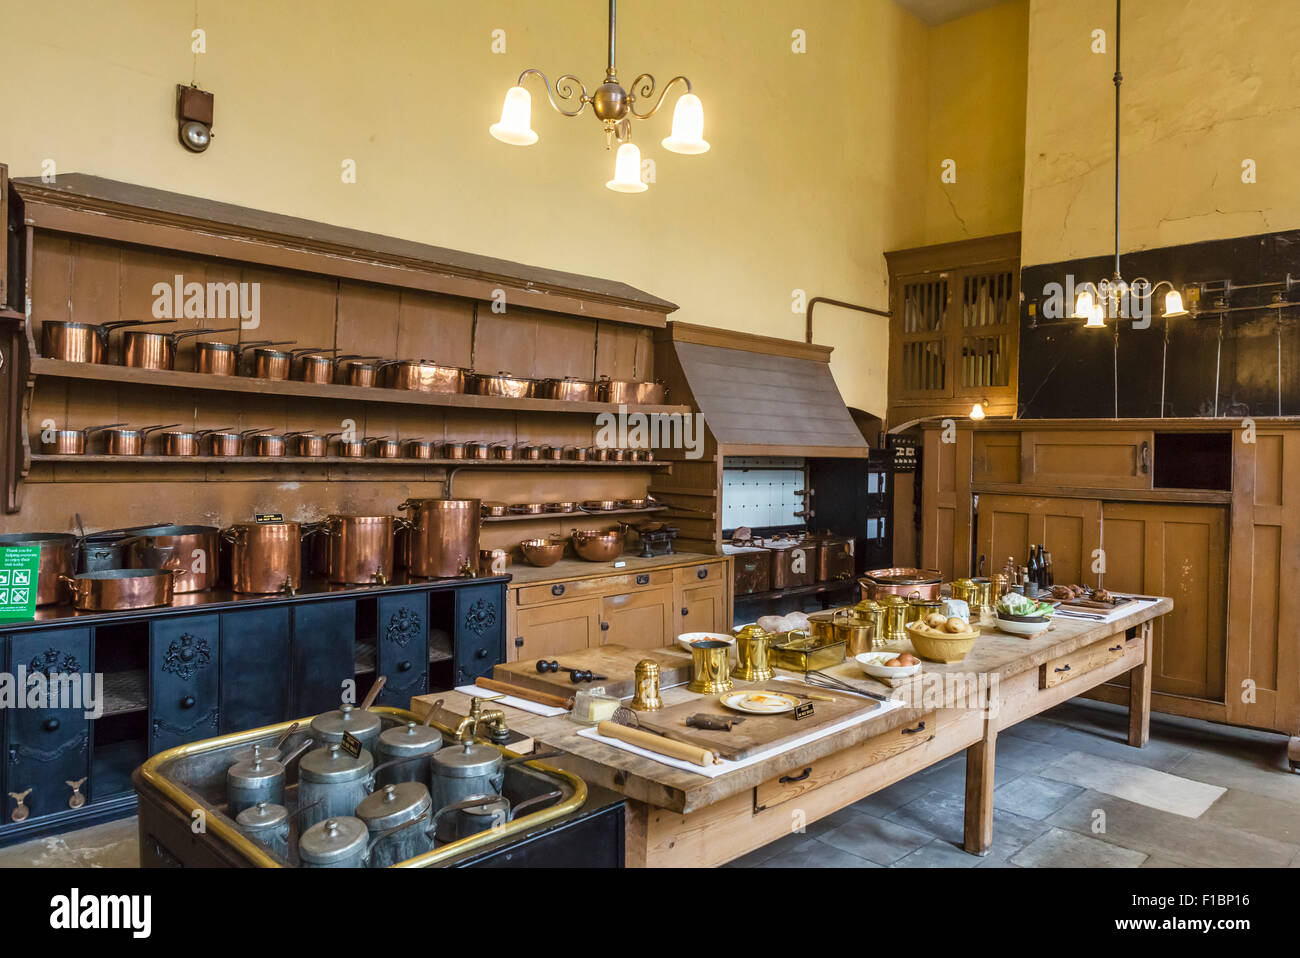 The historic kitchens at Petworth House, West Sussex, England, UK - Stock Image